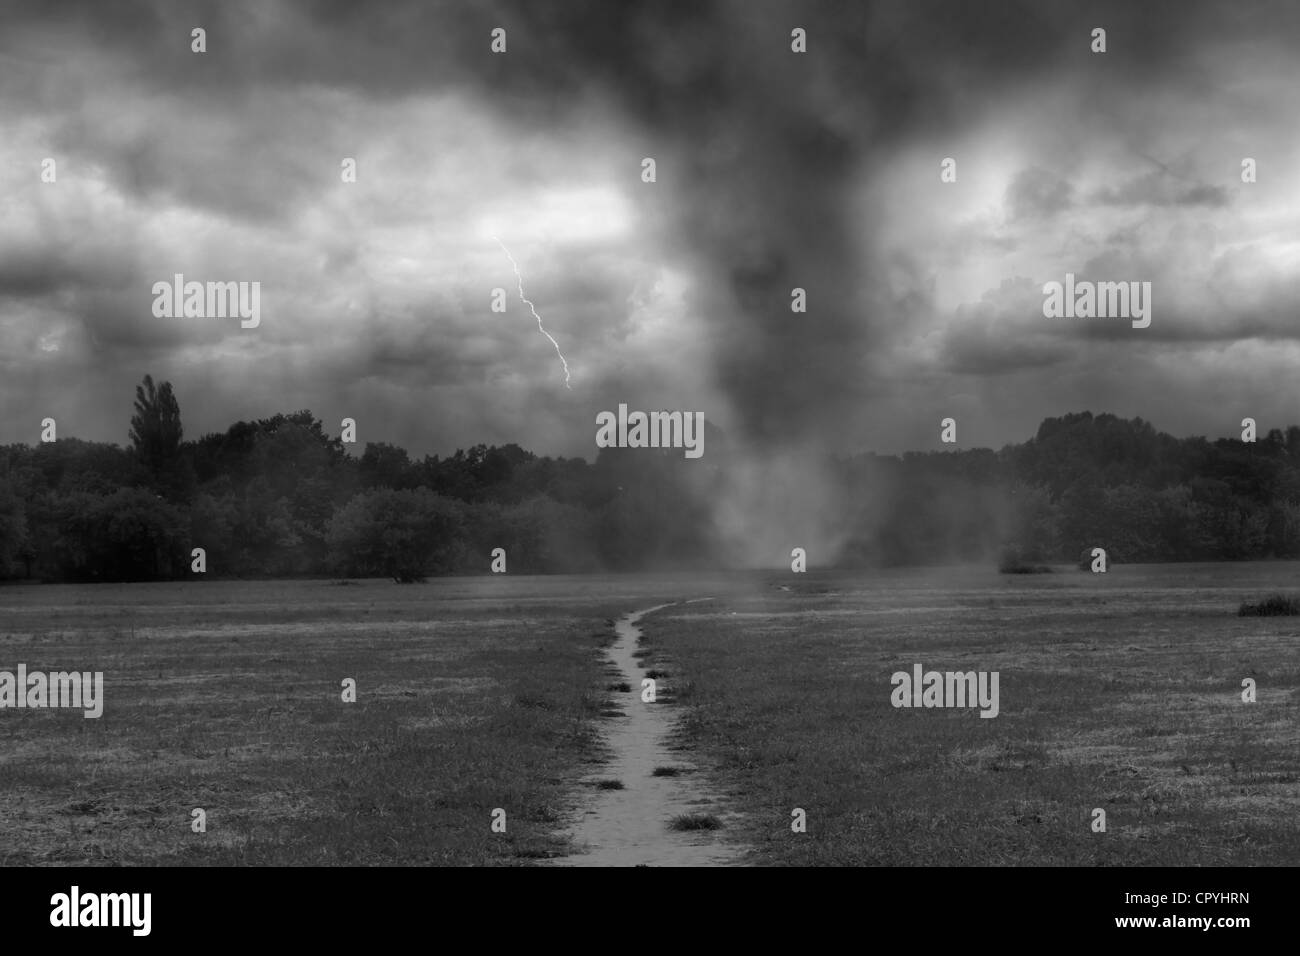 Tornado twister on the village road with lightning and dramatic sky - Stock Image